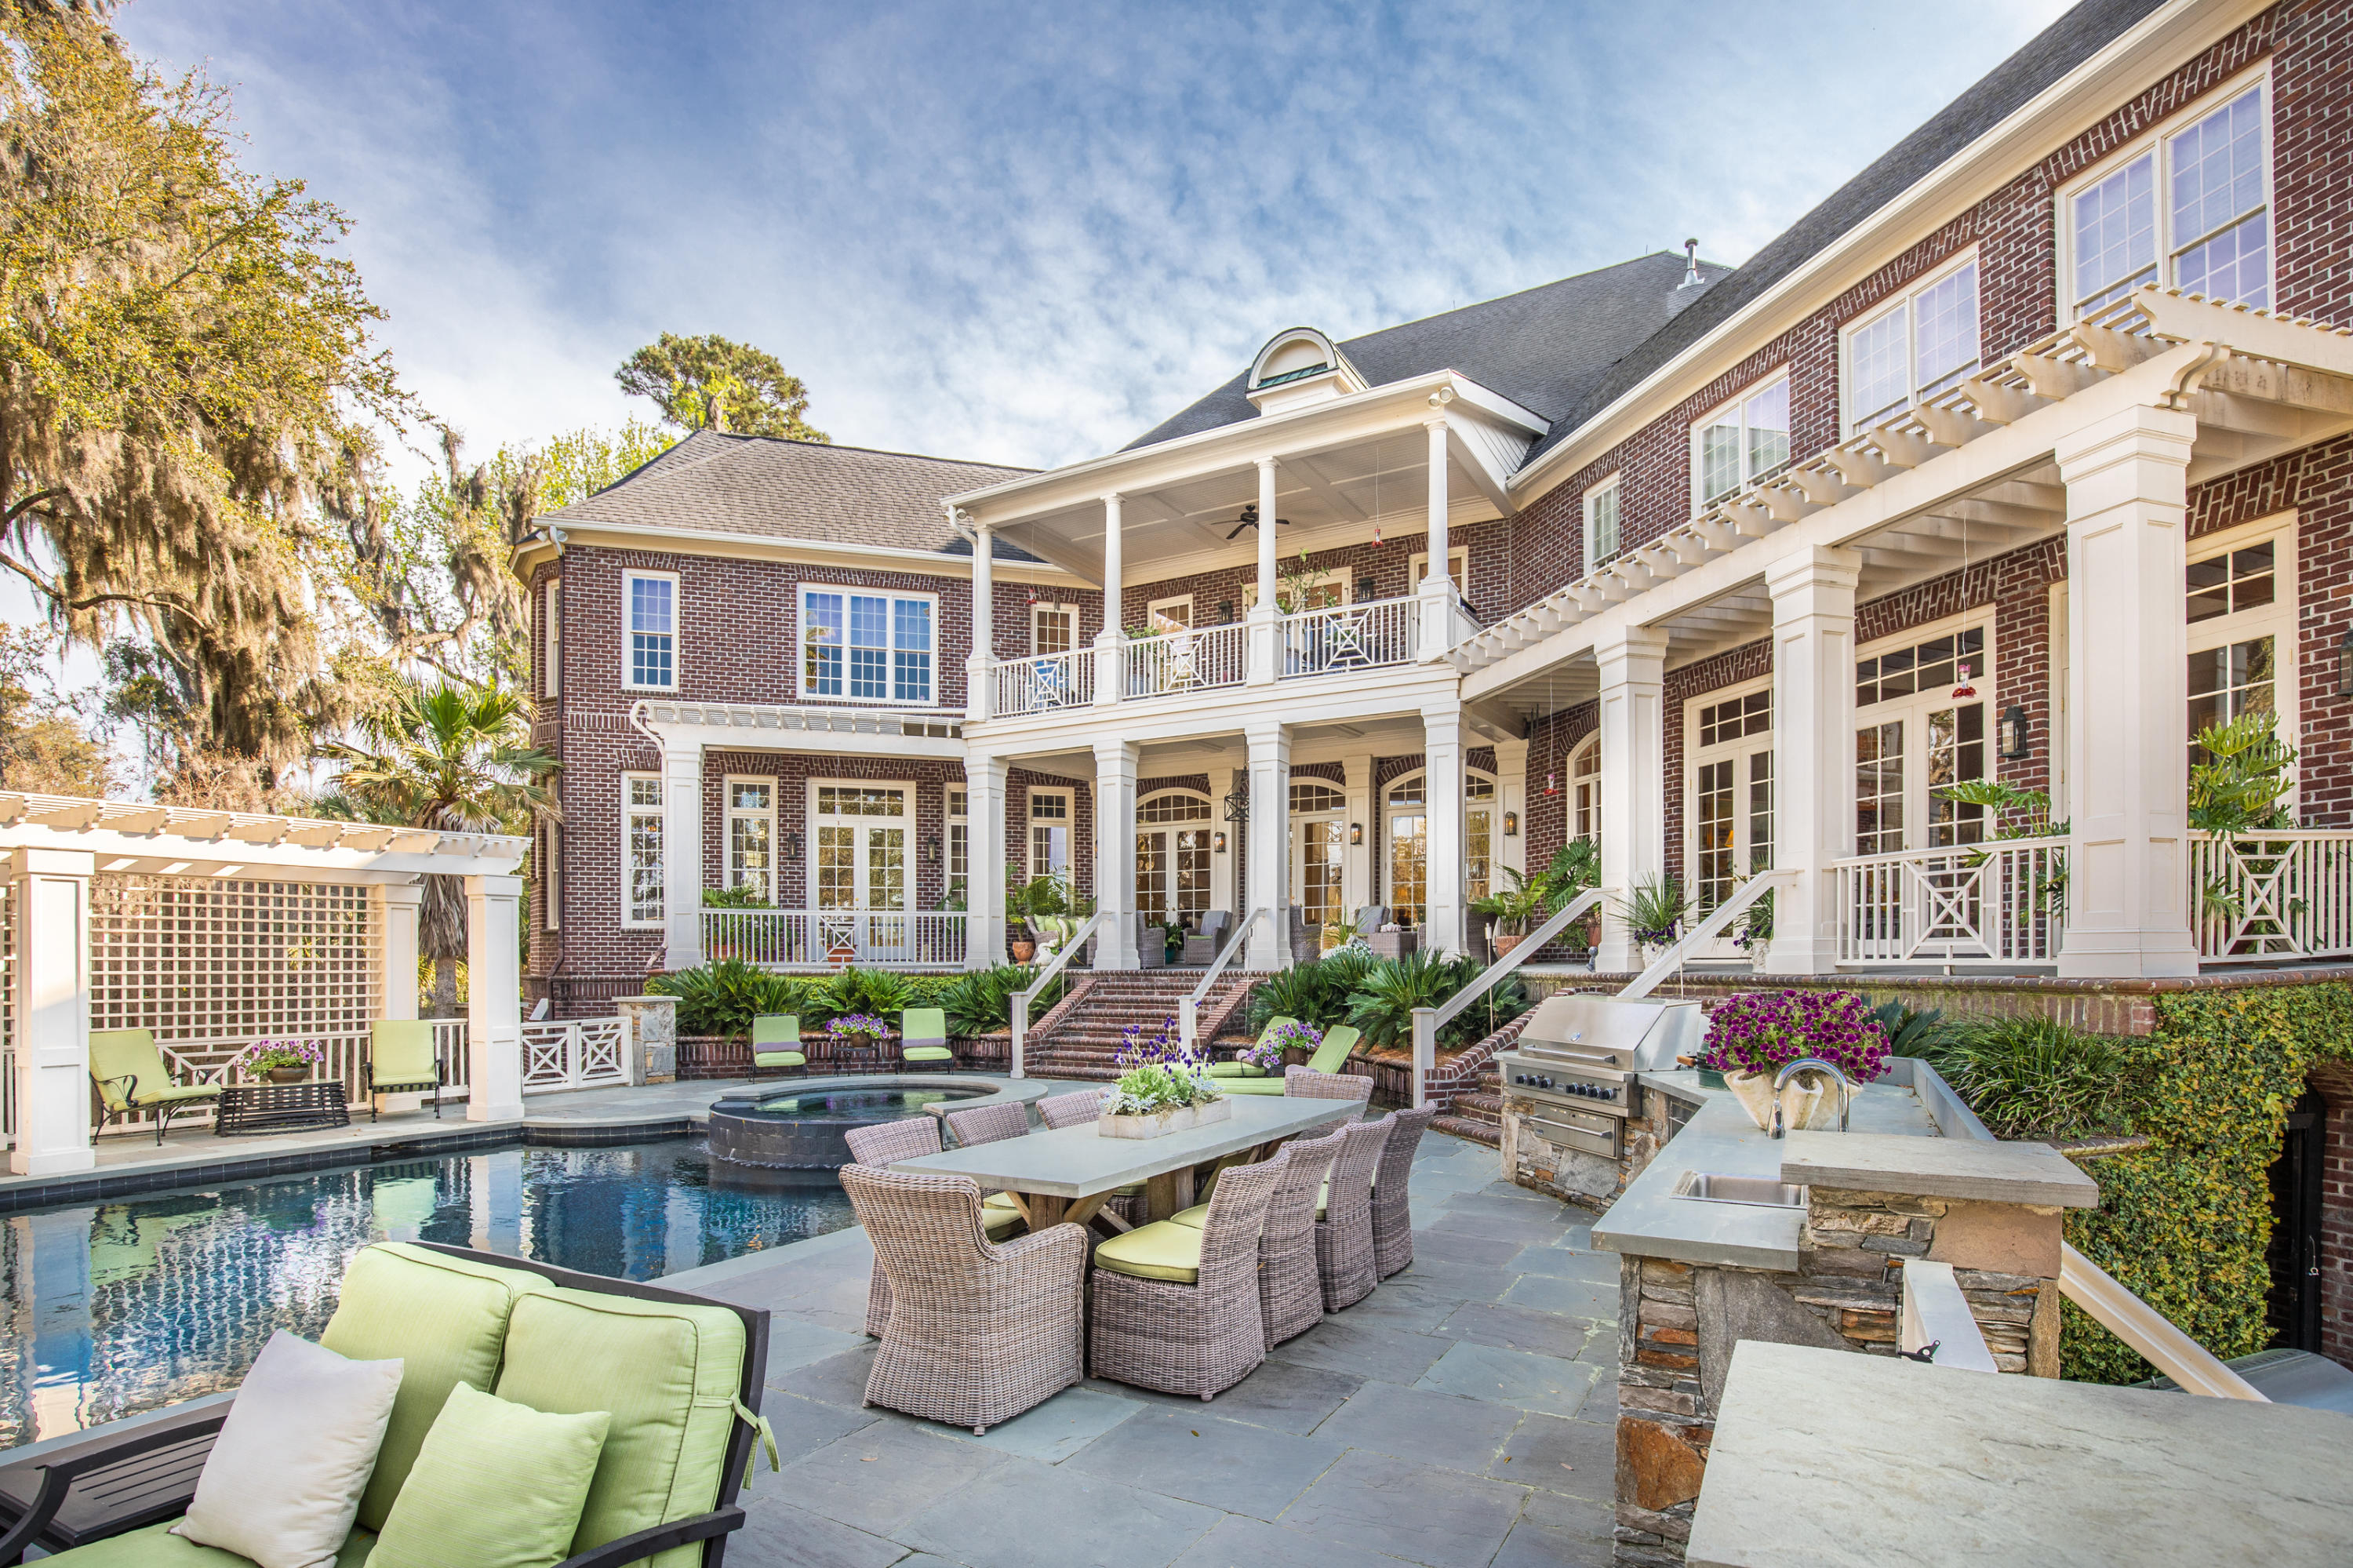 Ravens Bluff Homes For Sale - 5150 Chisolm, Johns Island, SC - 45